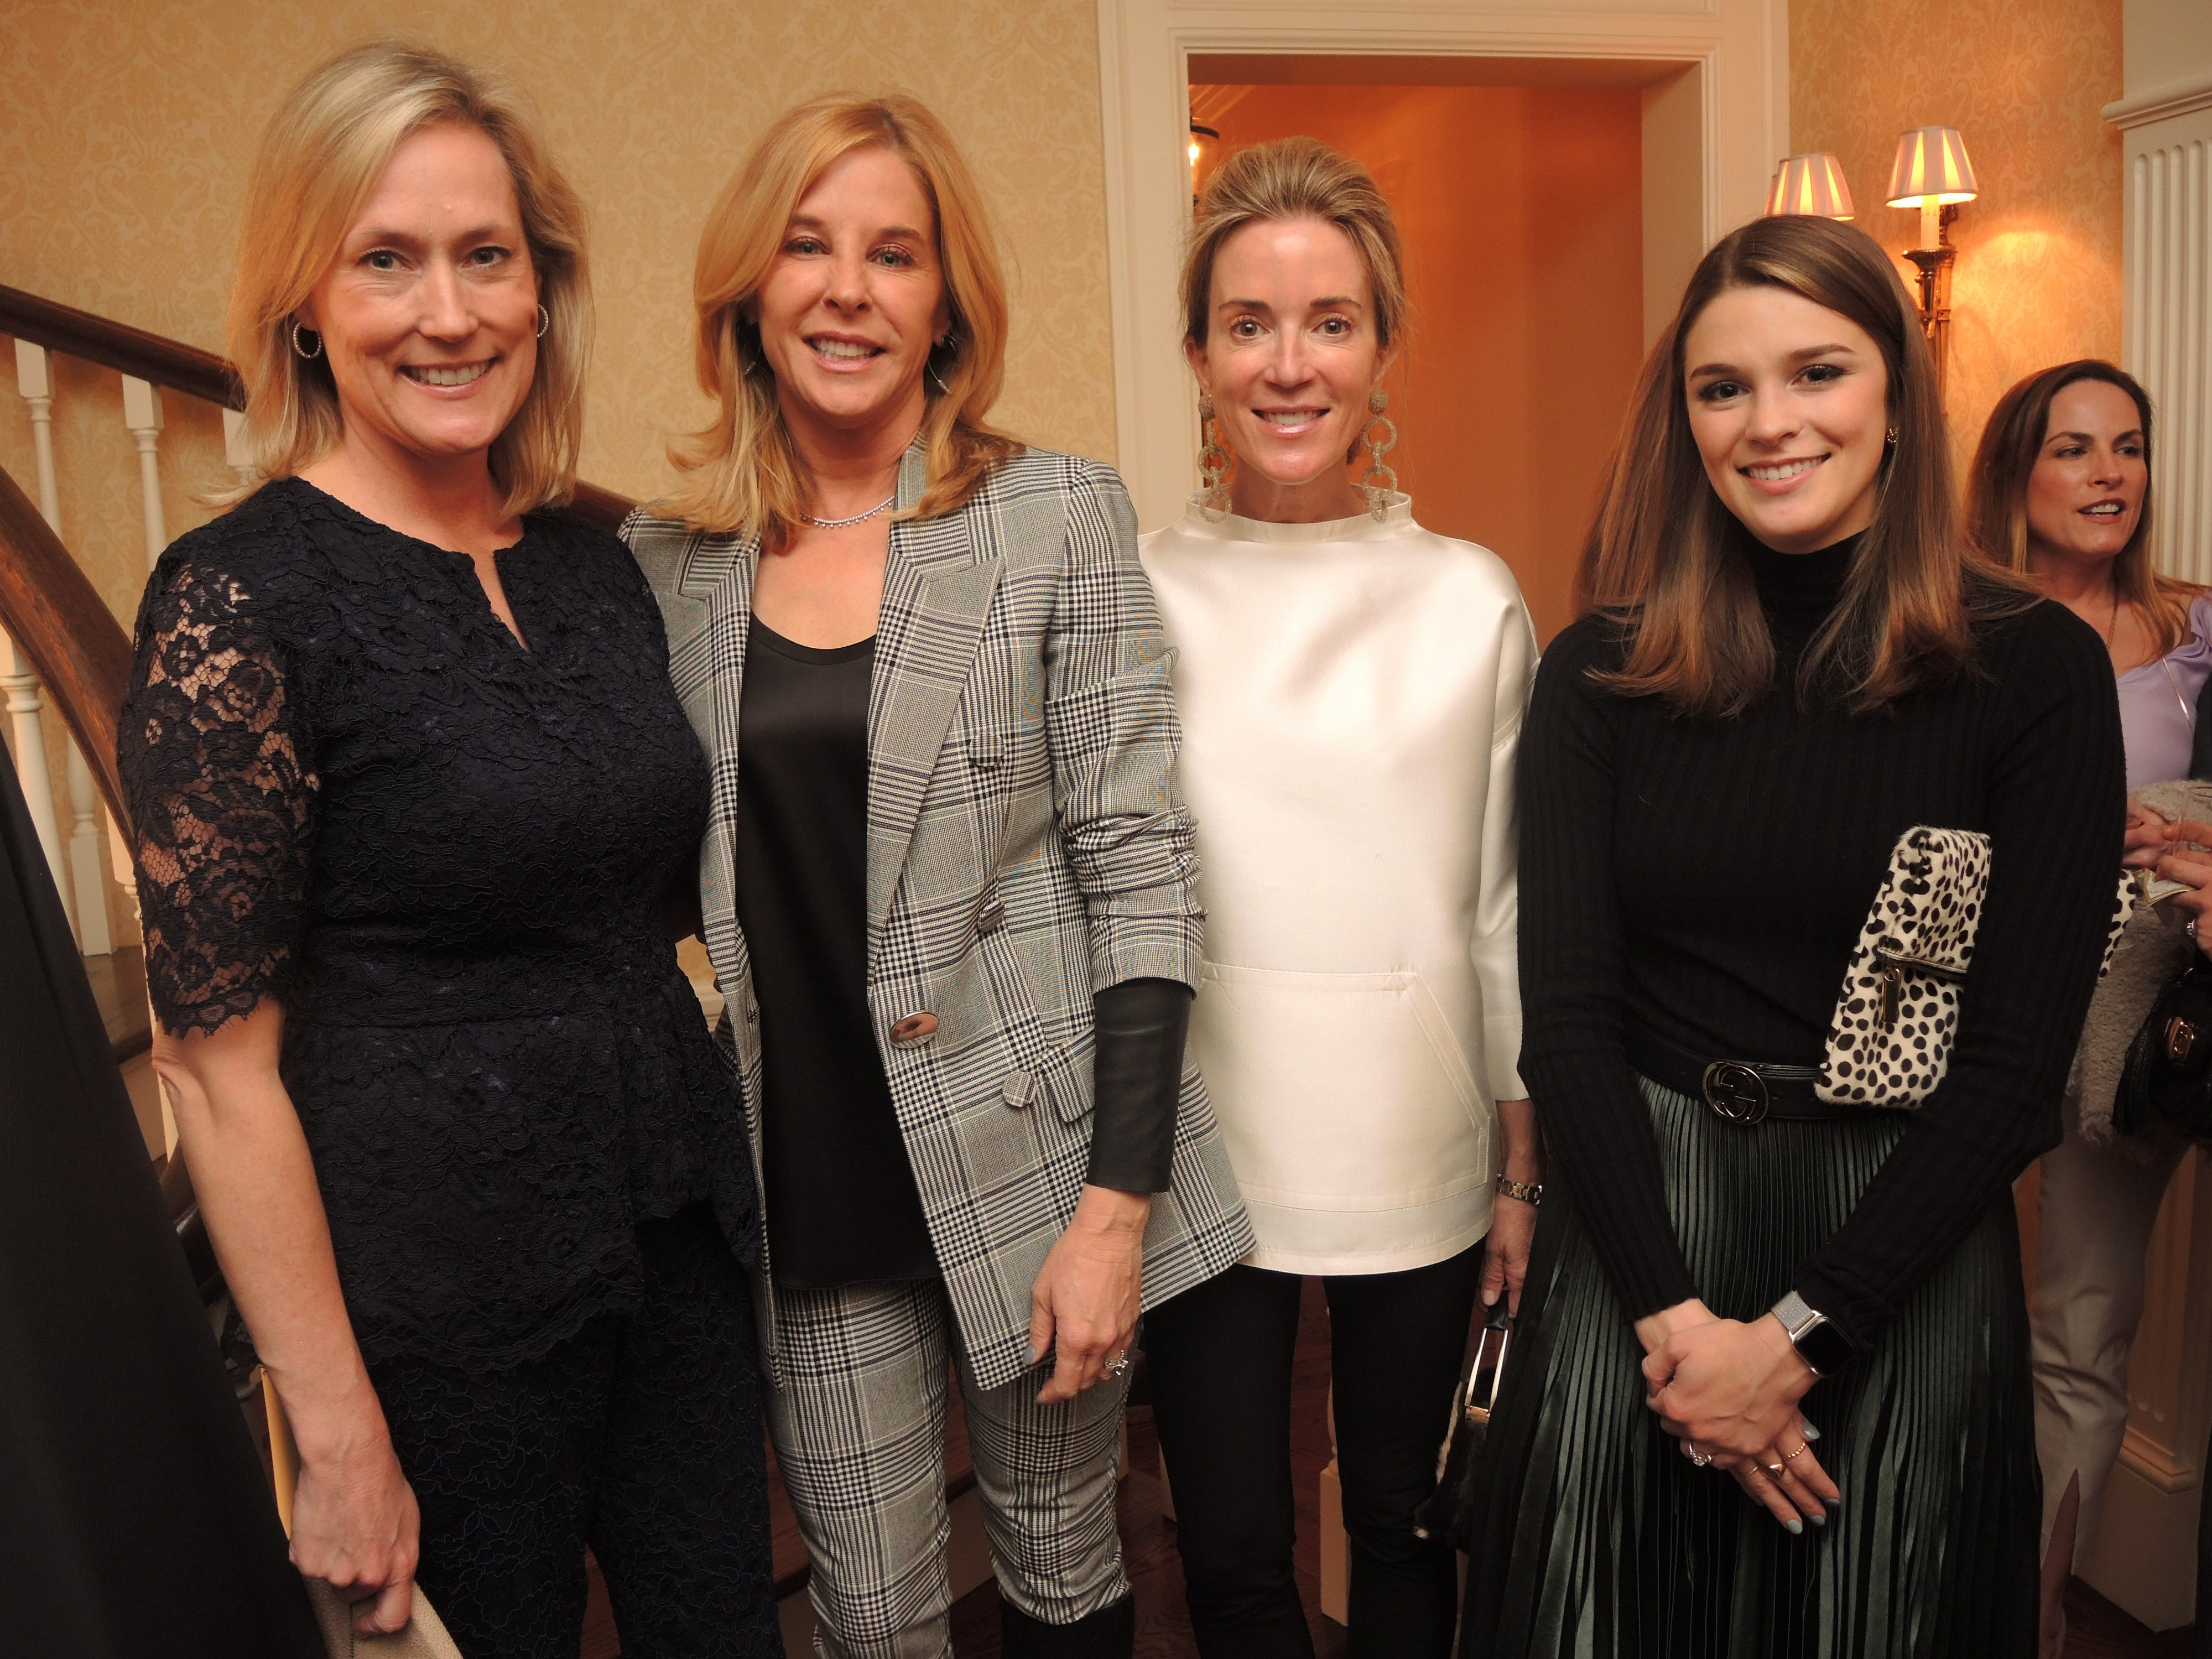 Anne Maradik, left, Barby White, Nan Cox and Molly White at the Swan Ball 2019 Unveiling, held at the home of Kathy and Bobby Rolfe.